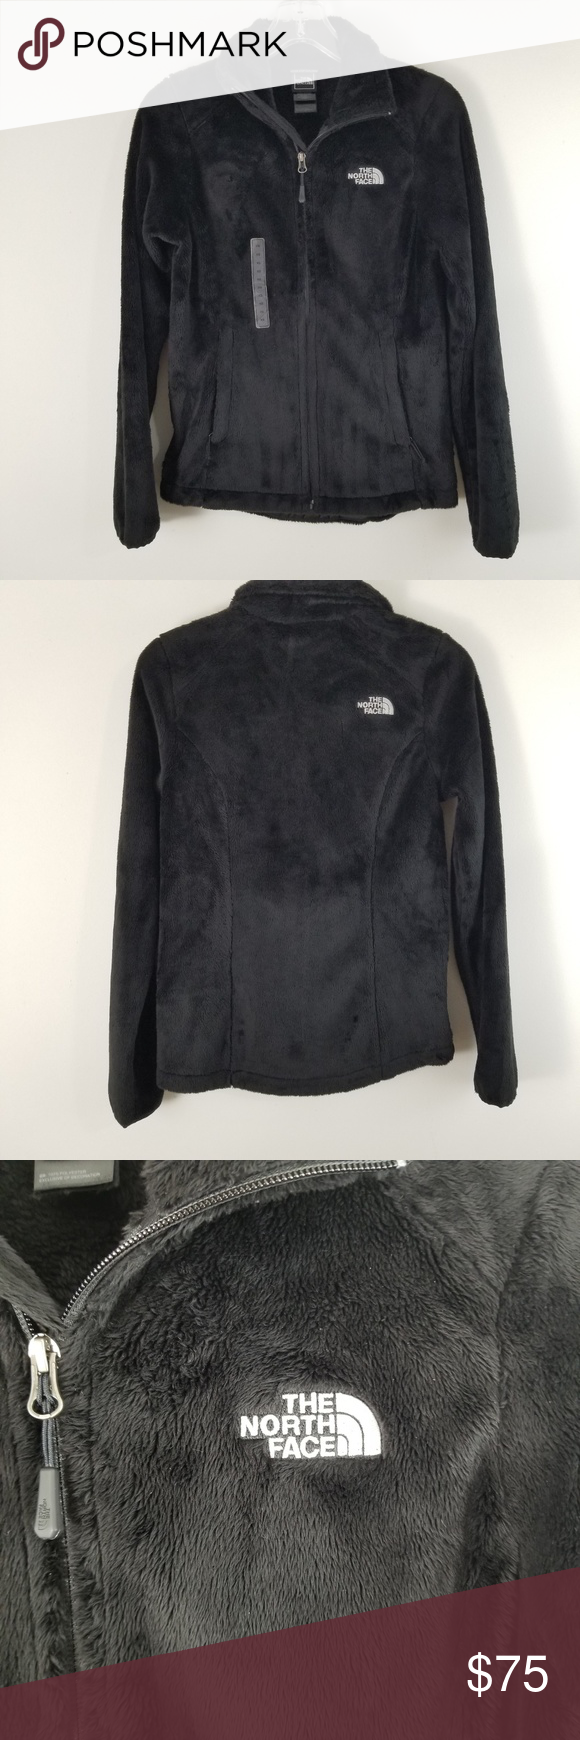 The North Face New Osito Jacket Womens Xs Jackets For Women Blazers For Women Jackets [ 1740 x 580 Pixel ]